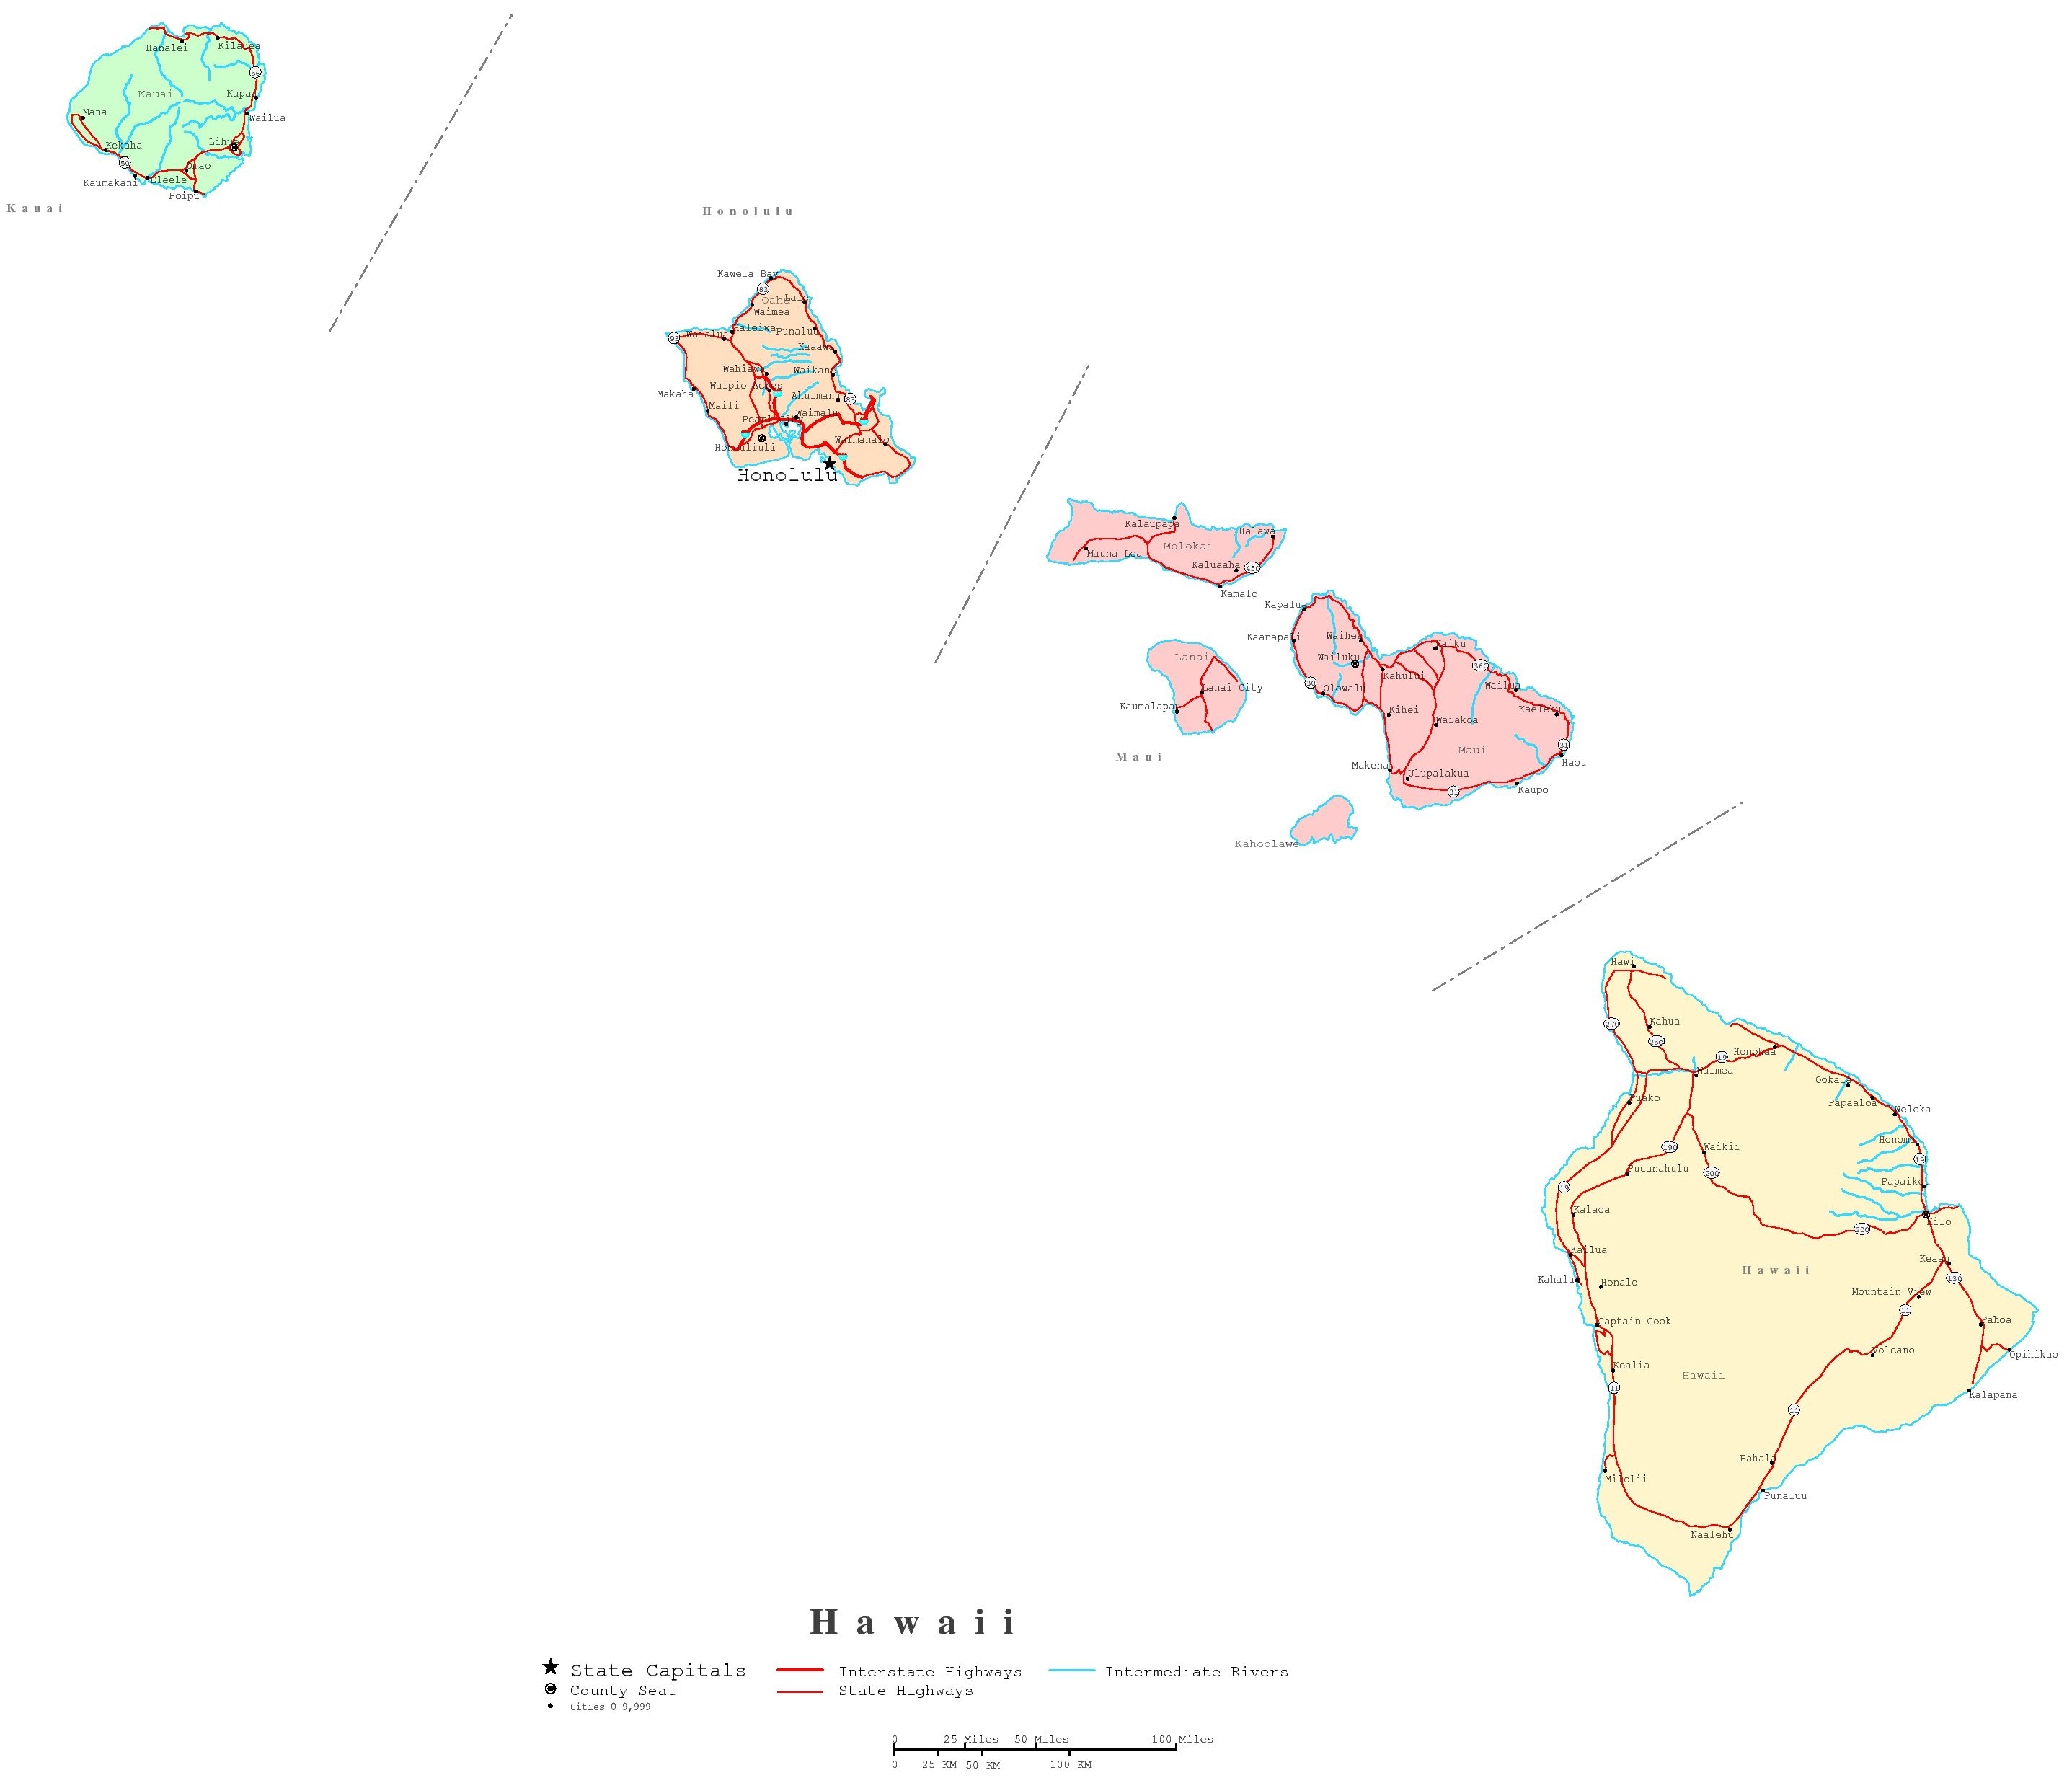 Hawaii Printable Map - Hawaii cities map